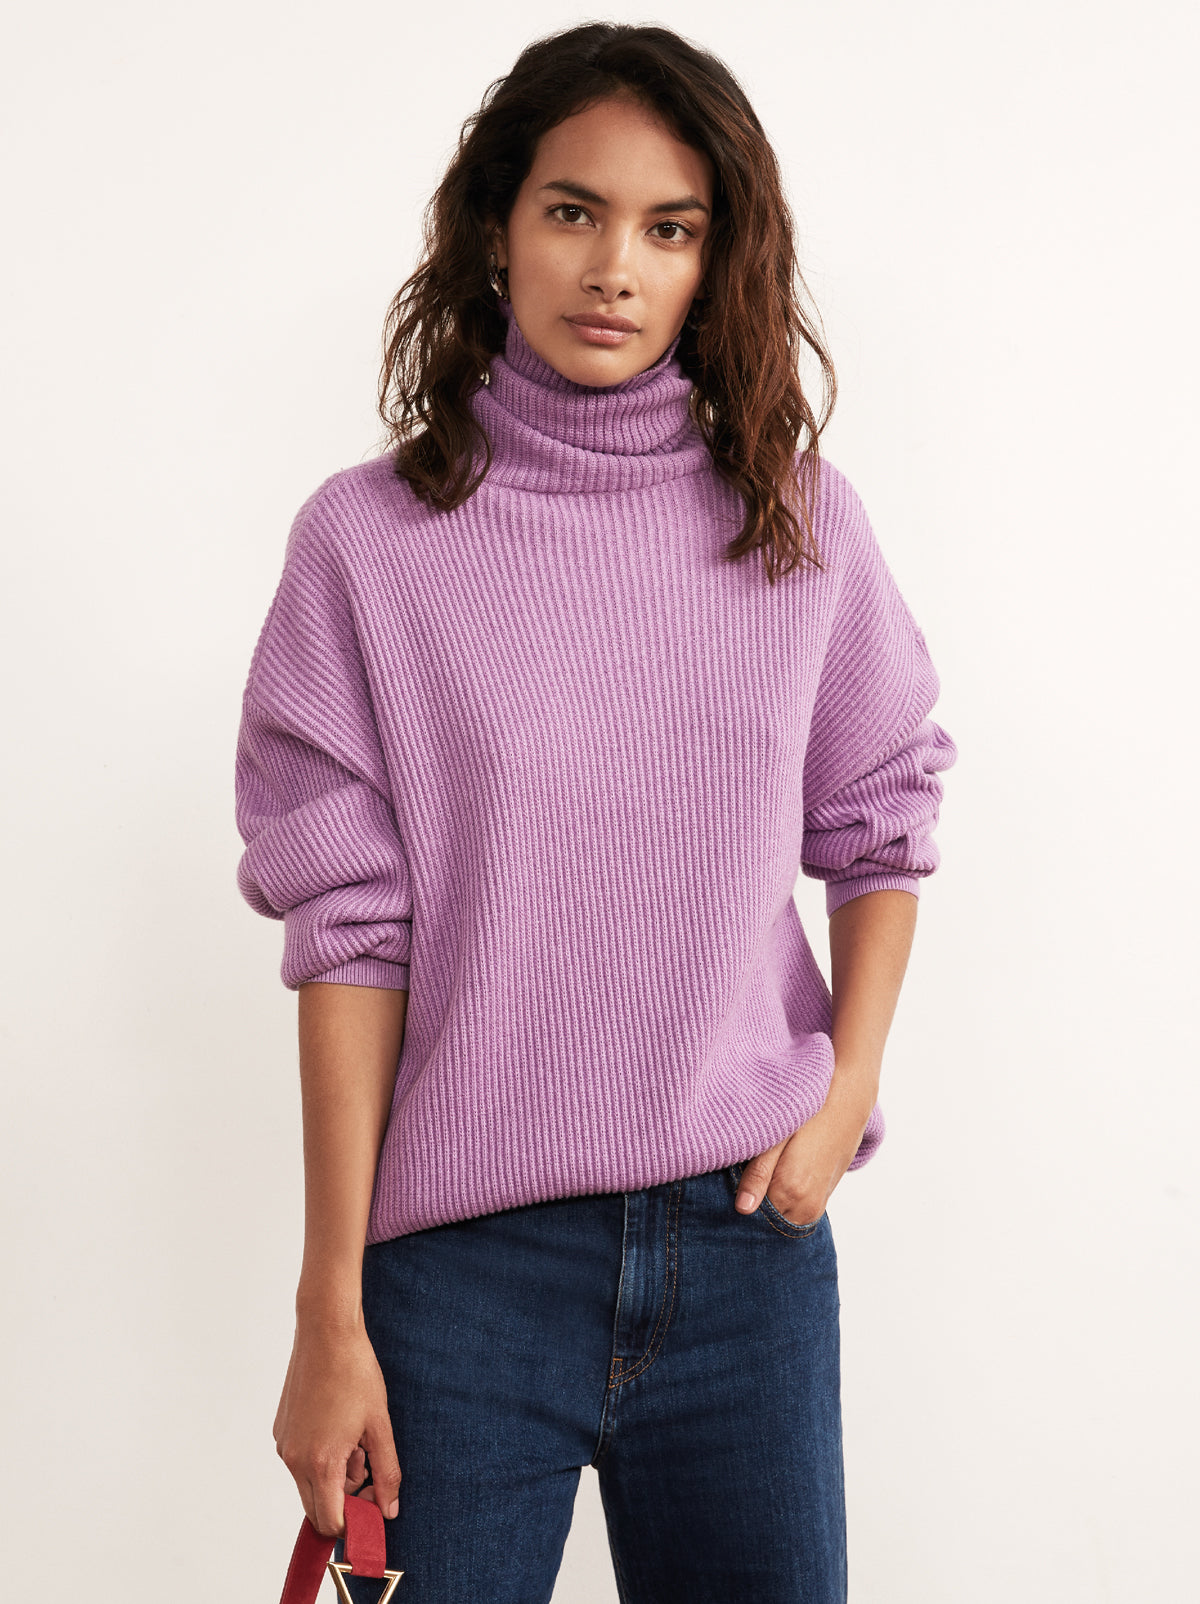 Mabel Purple Cotton Roll Neck Jumper by KITRI Studio